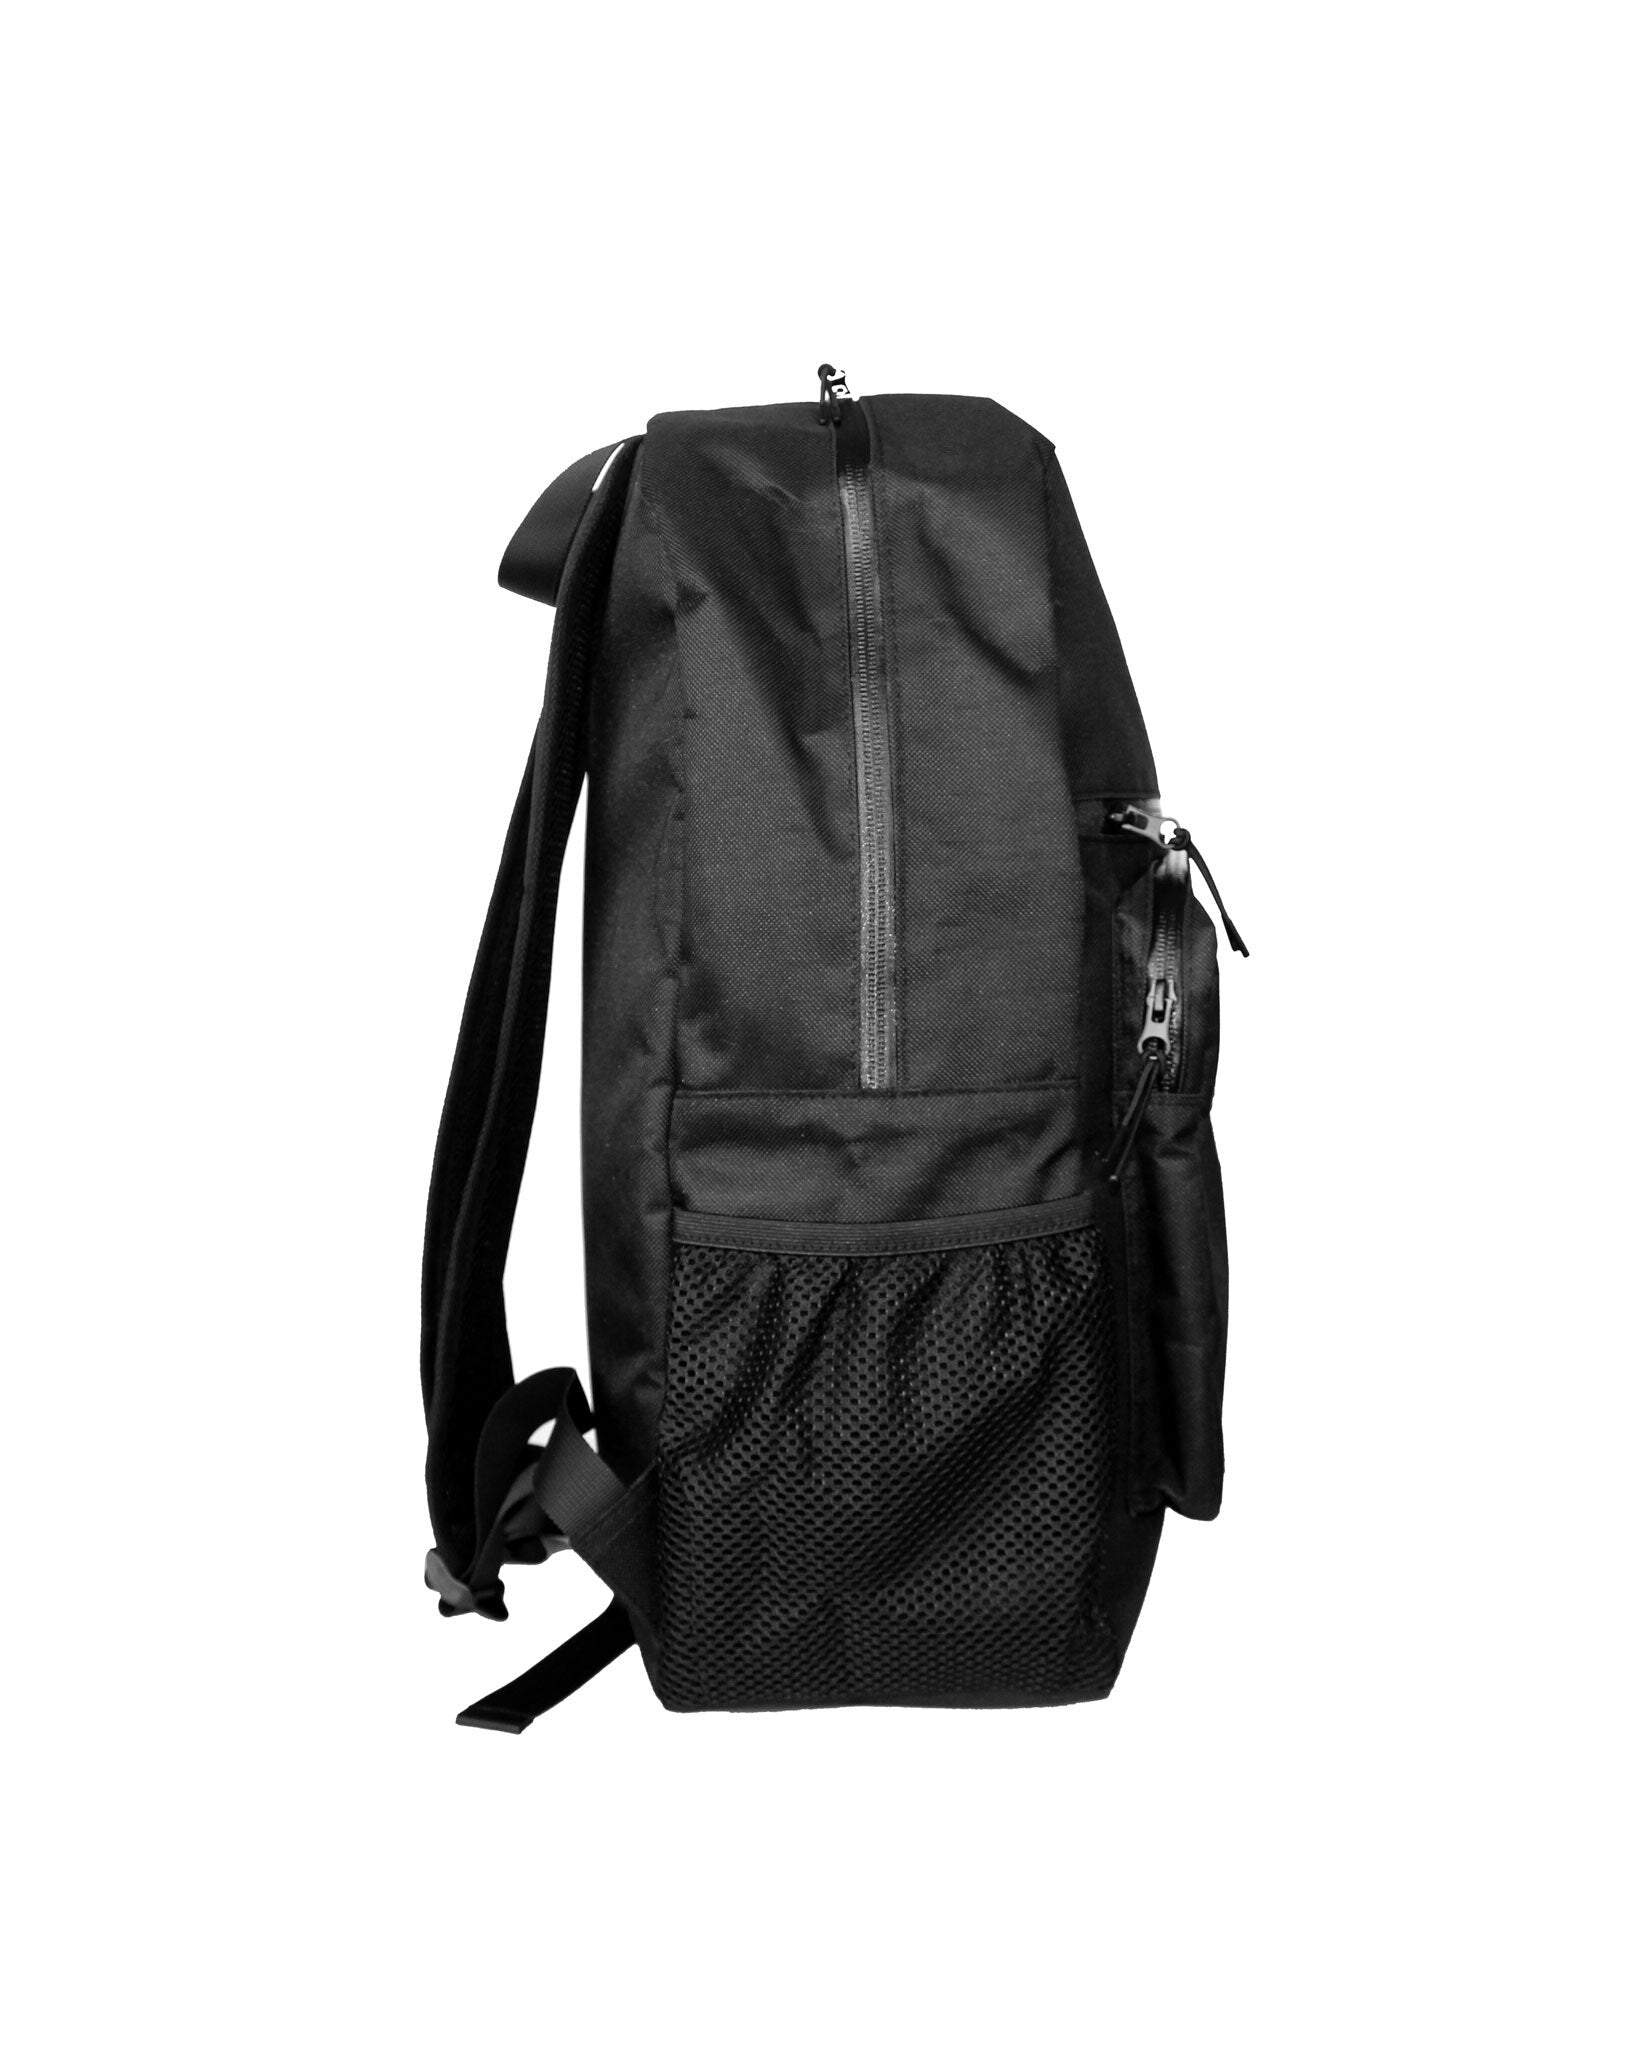 Cairns Taipans 20/21 Official Backpack